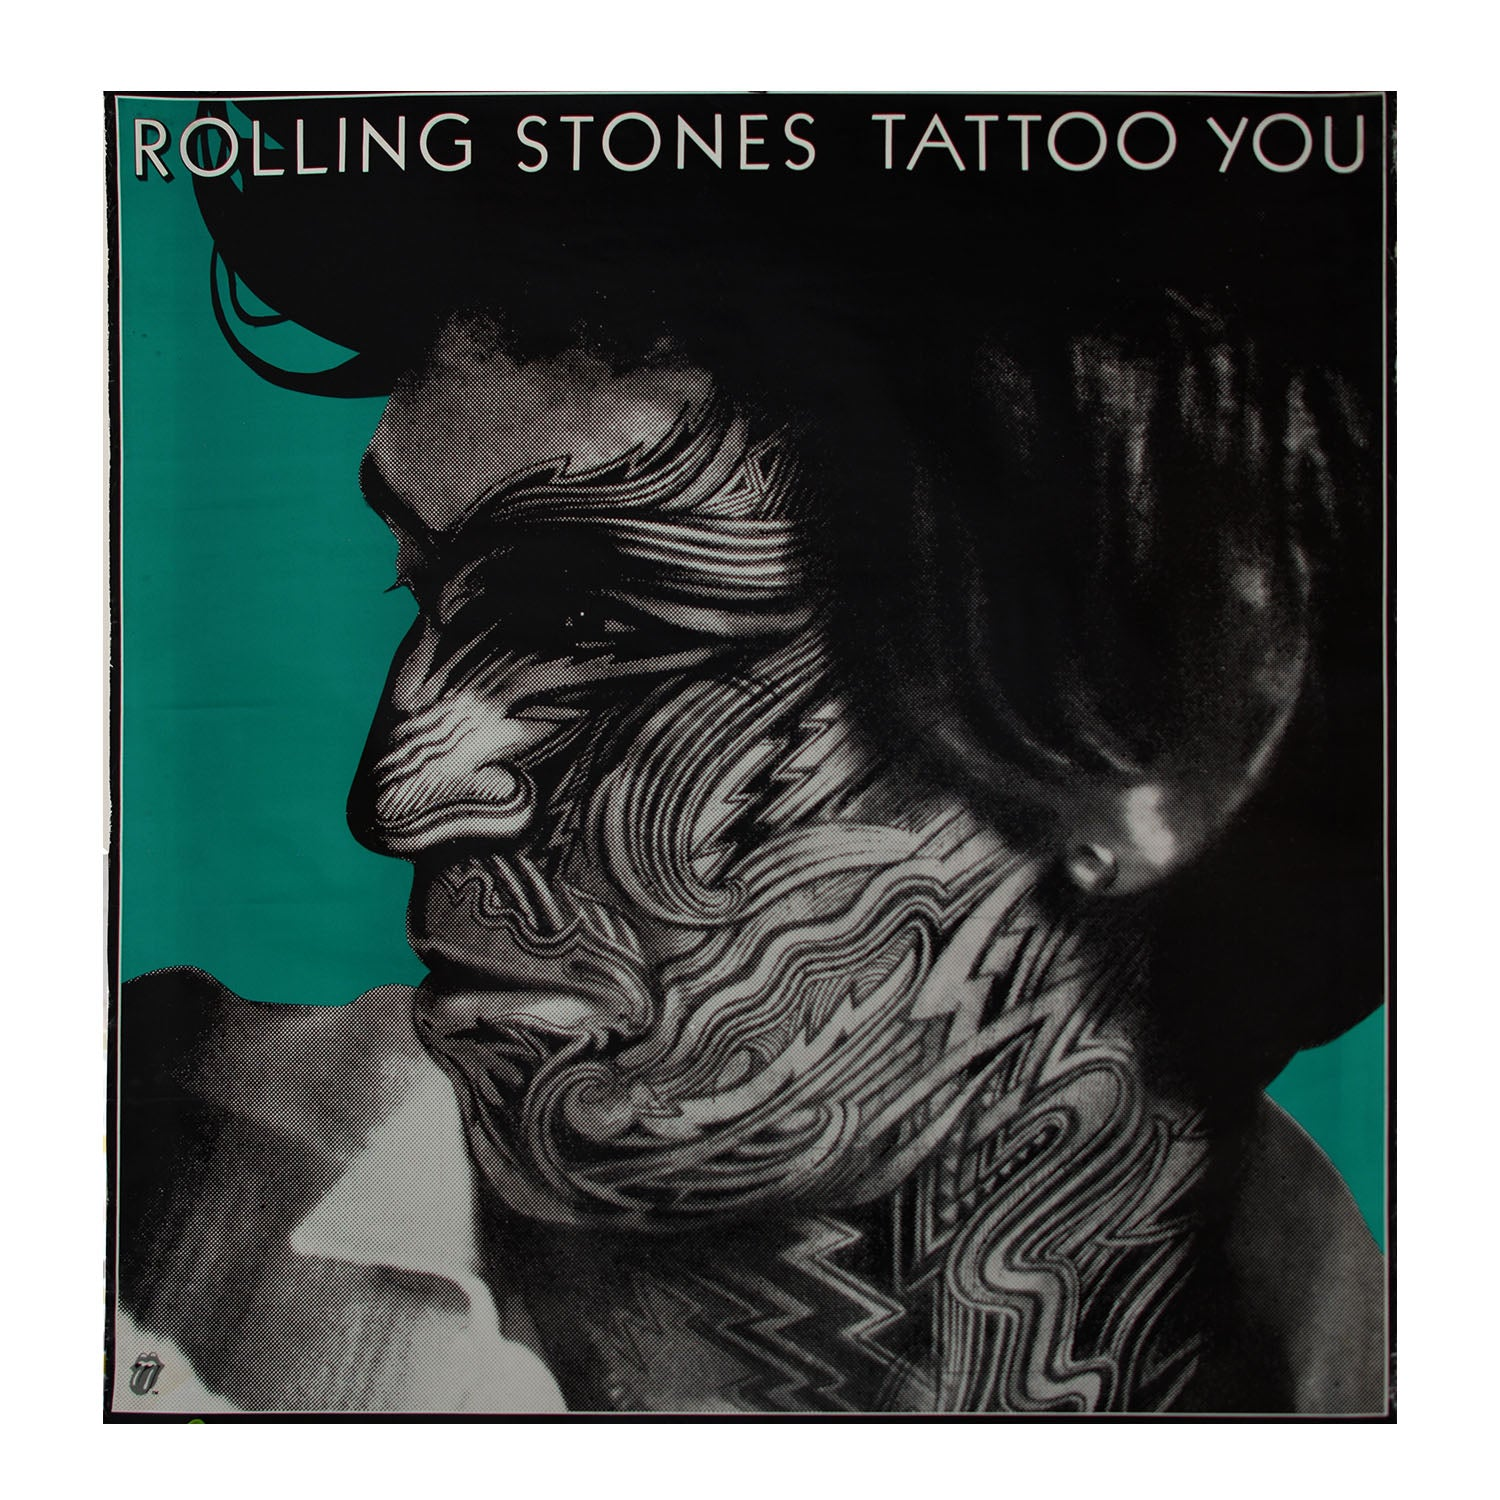 Original poster: Tattoo You [Rolling Stones]